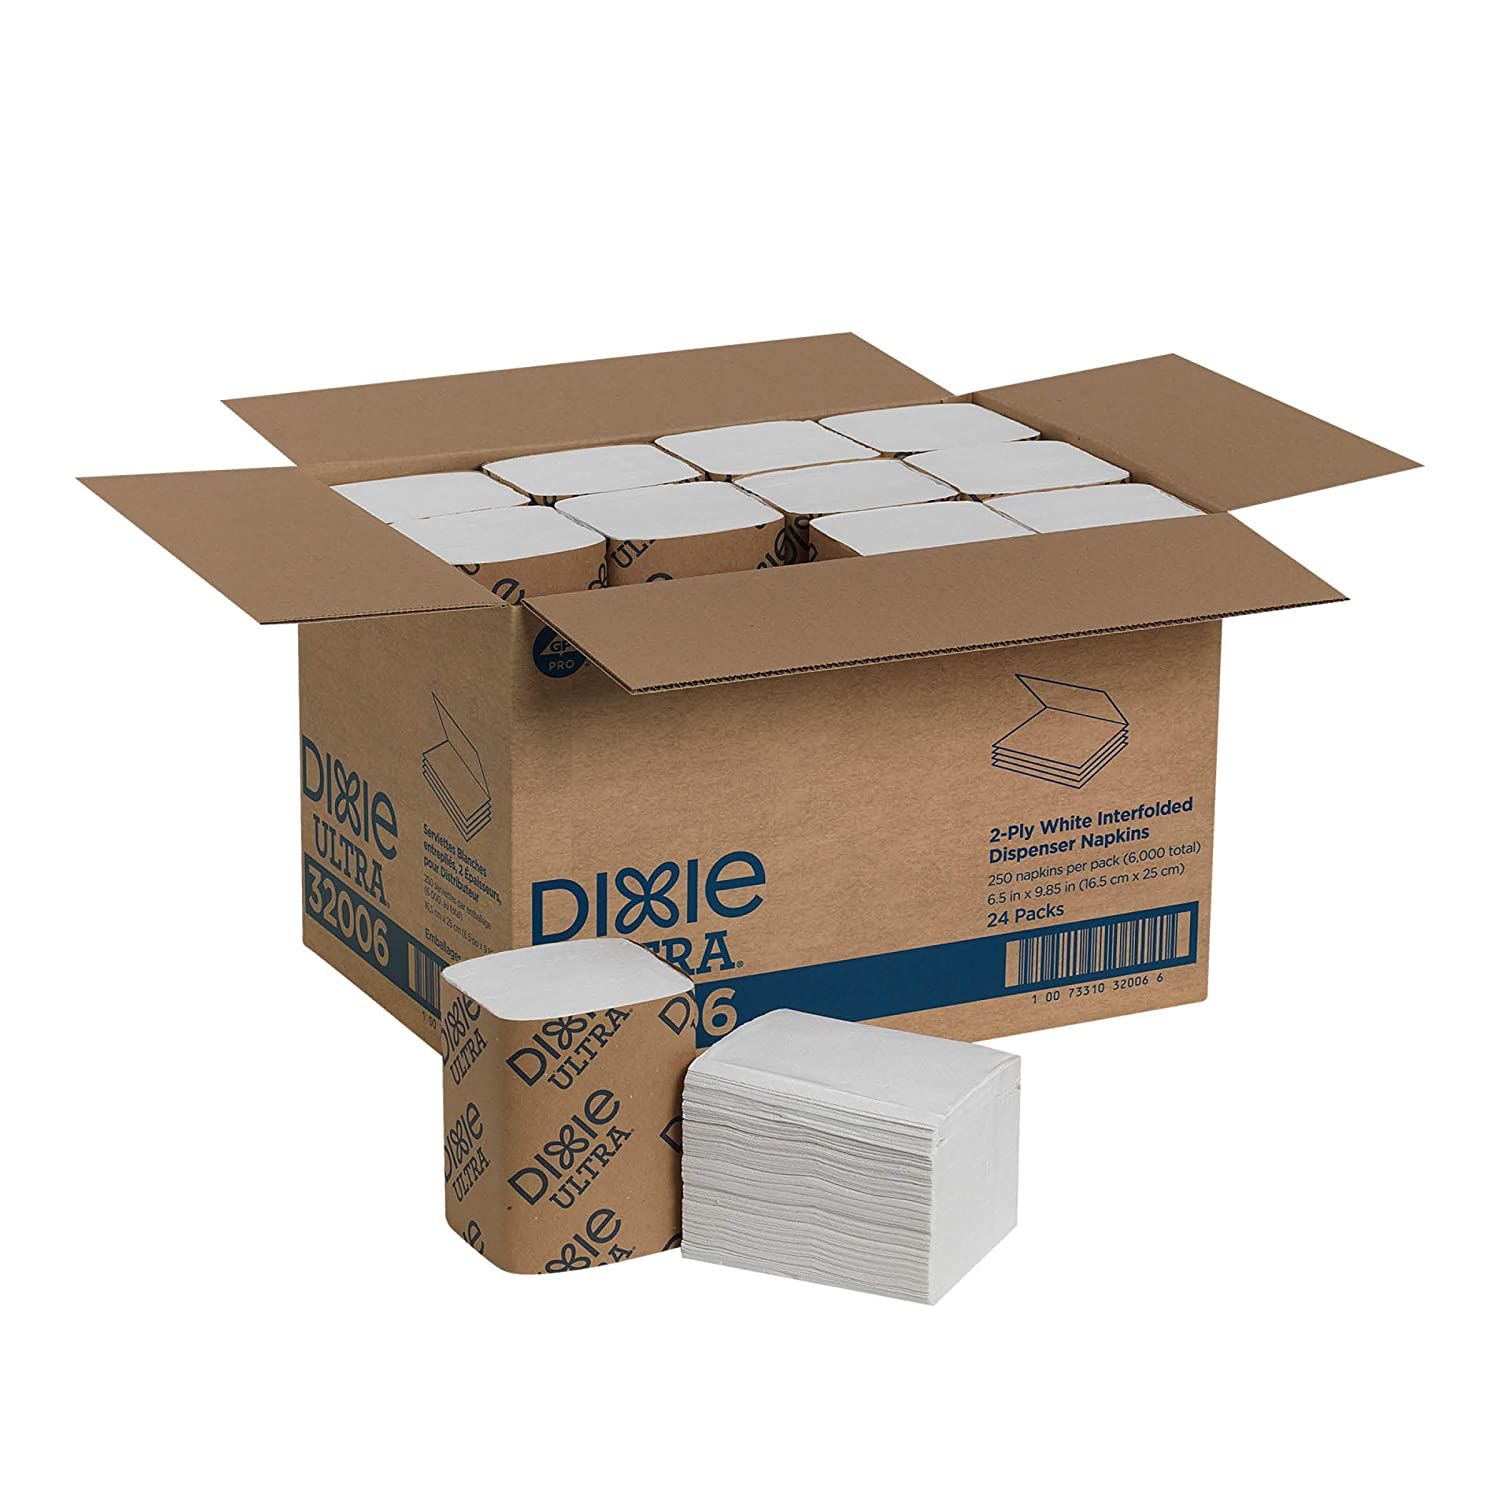 Dixie Ultra Interfold Napkins White 2-Ply by GP PRO (Georgia-Pacific), 32006, 250 Napkins Per Pack, 24 Packs Per Case